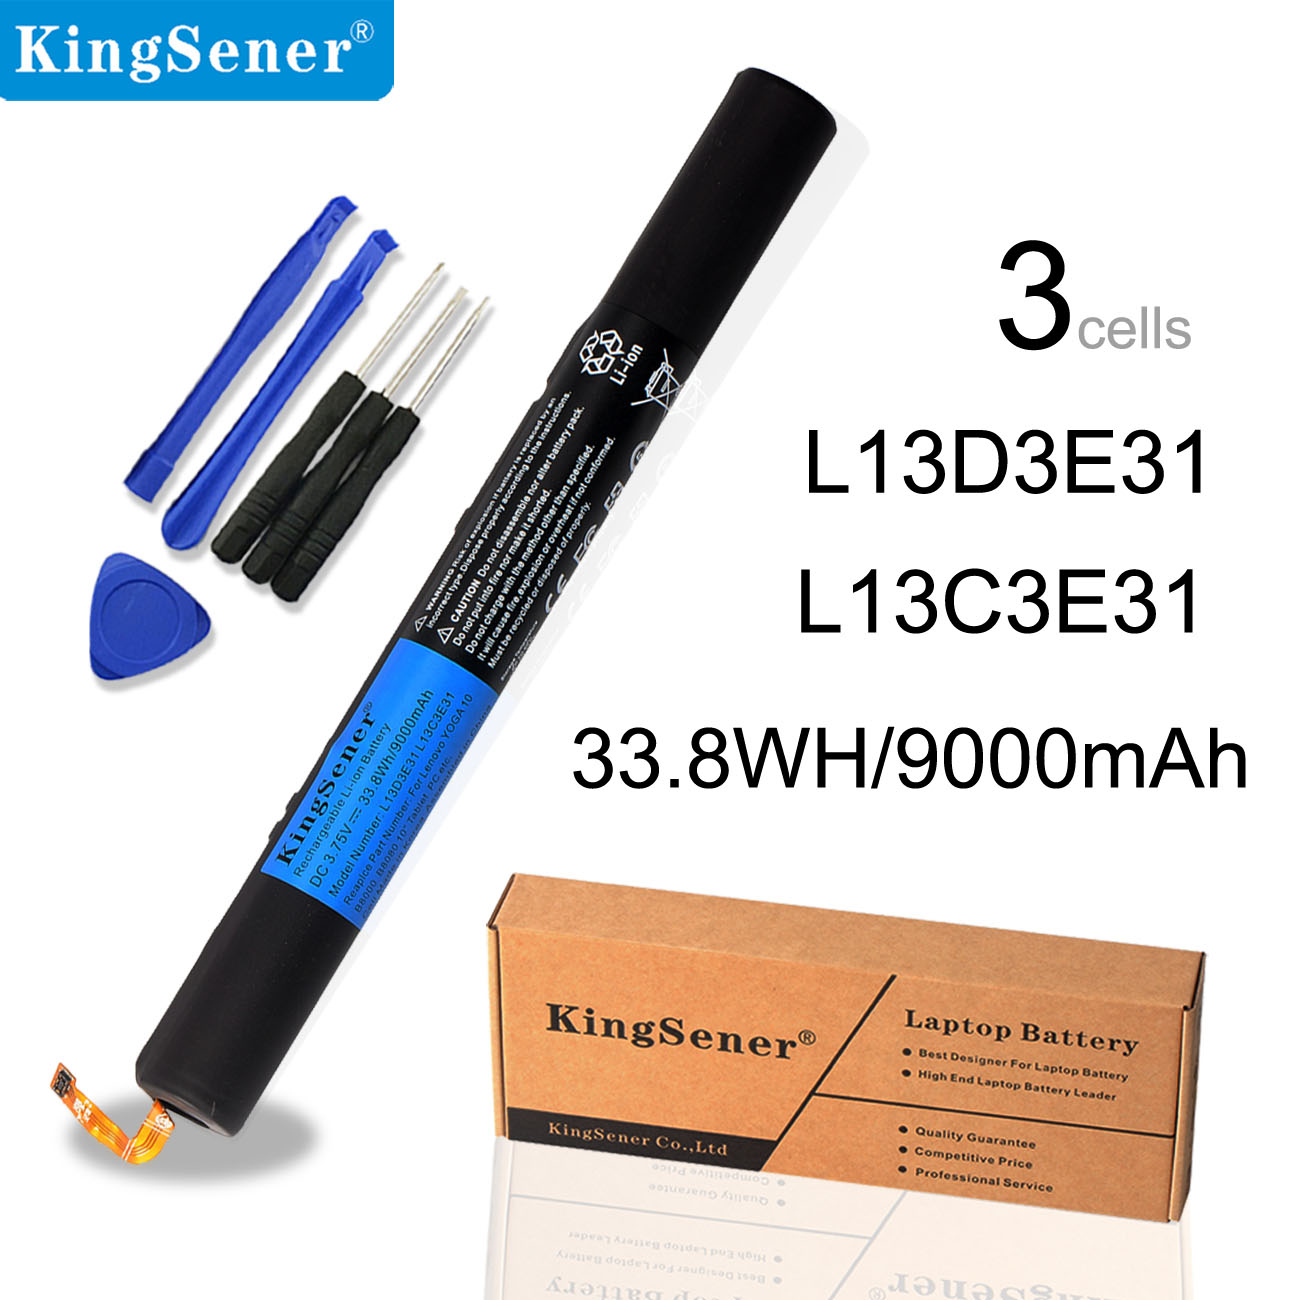 KingSener L13D3E31 <font><b>Tablet</b></font> <font><b>Batterie</b></font> für <font><b>LENOVO</b></font> <font><b>YOGA</b></font> <font><b>10</b></font>